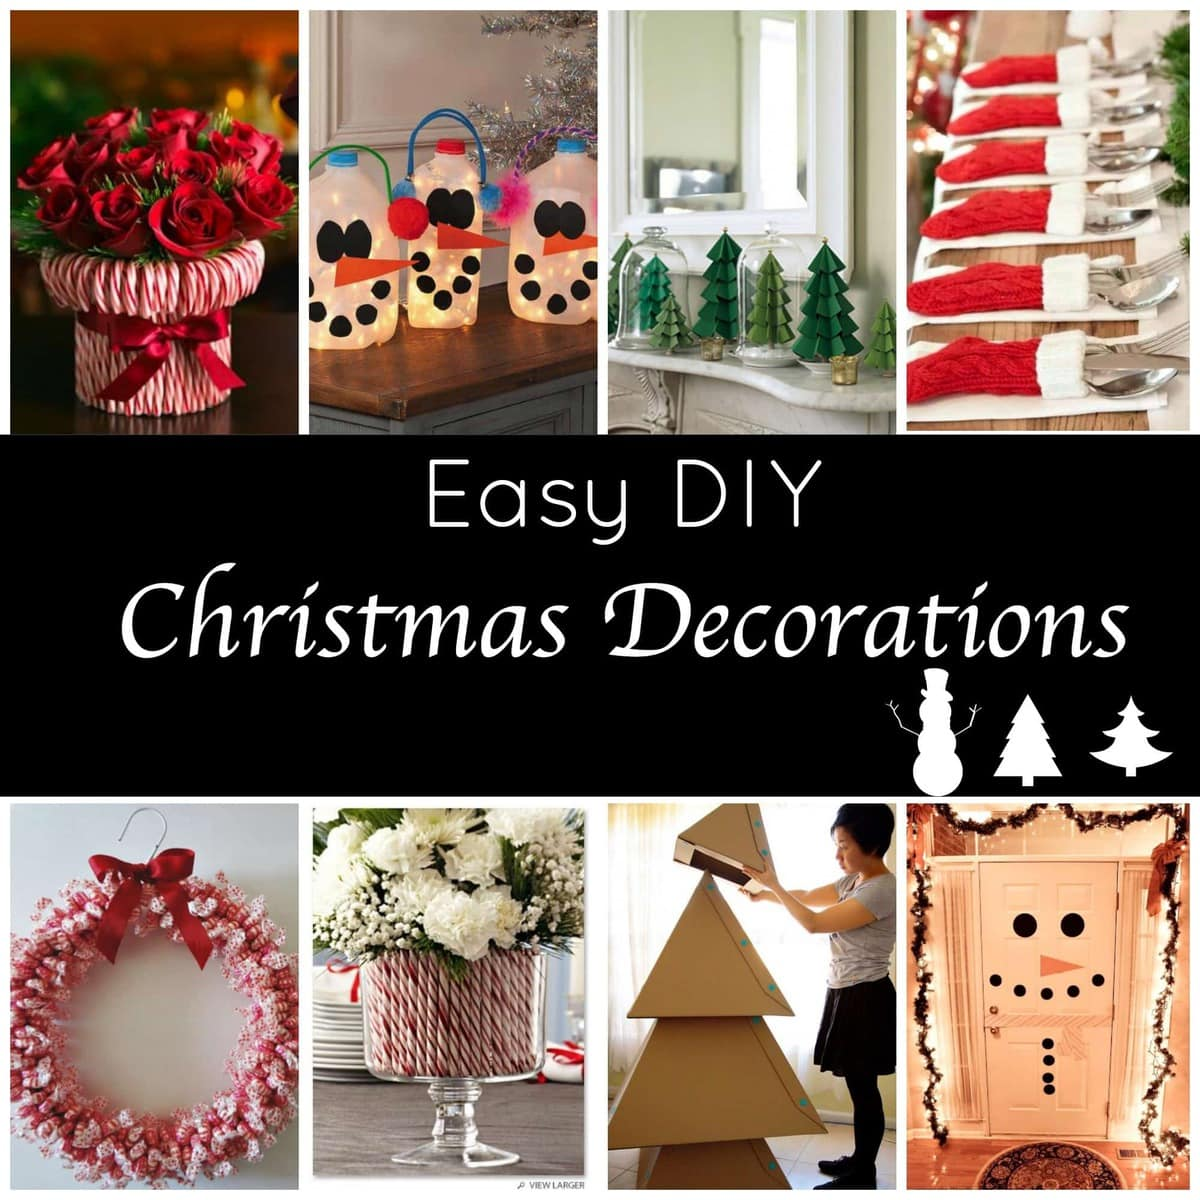 Cute and easy diy holiday decorations for a festive home for Simple christmas home decorations